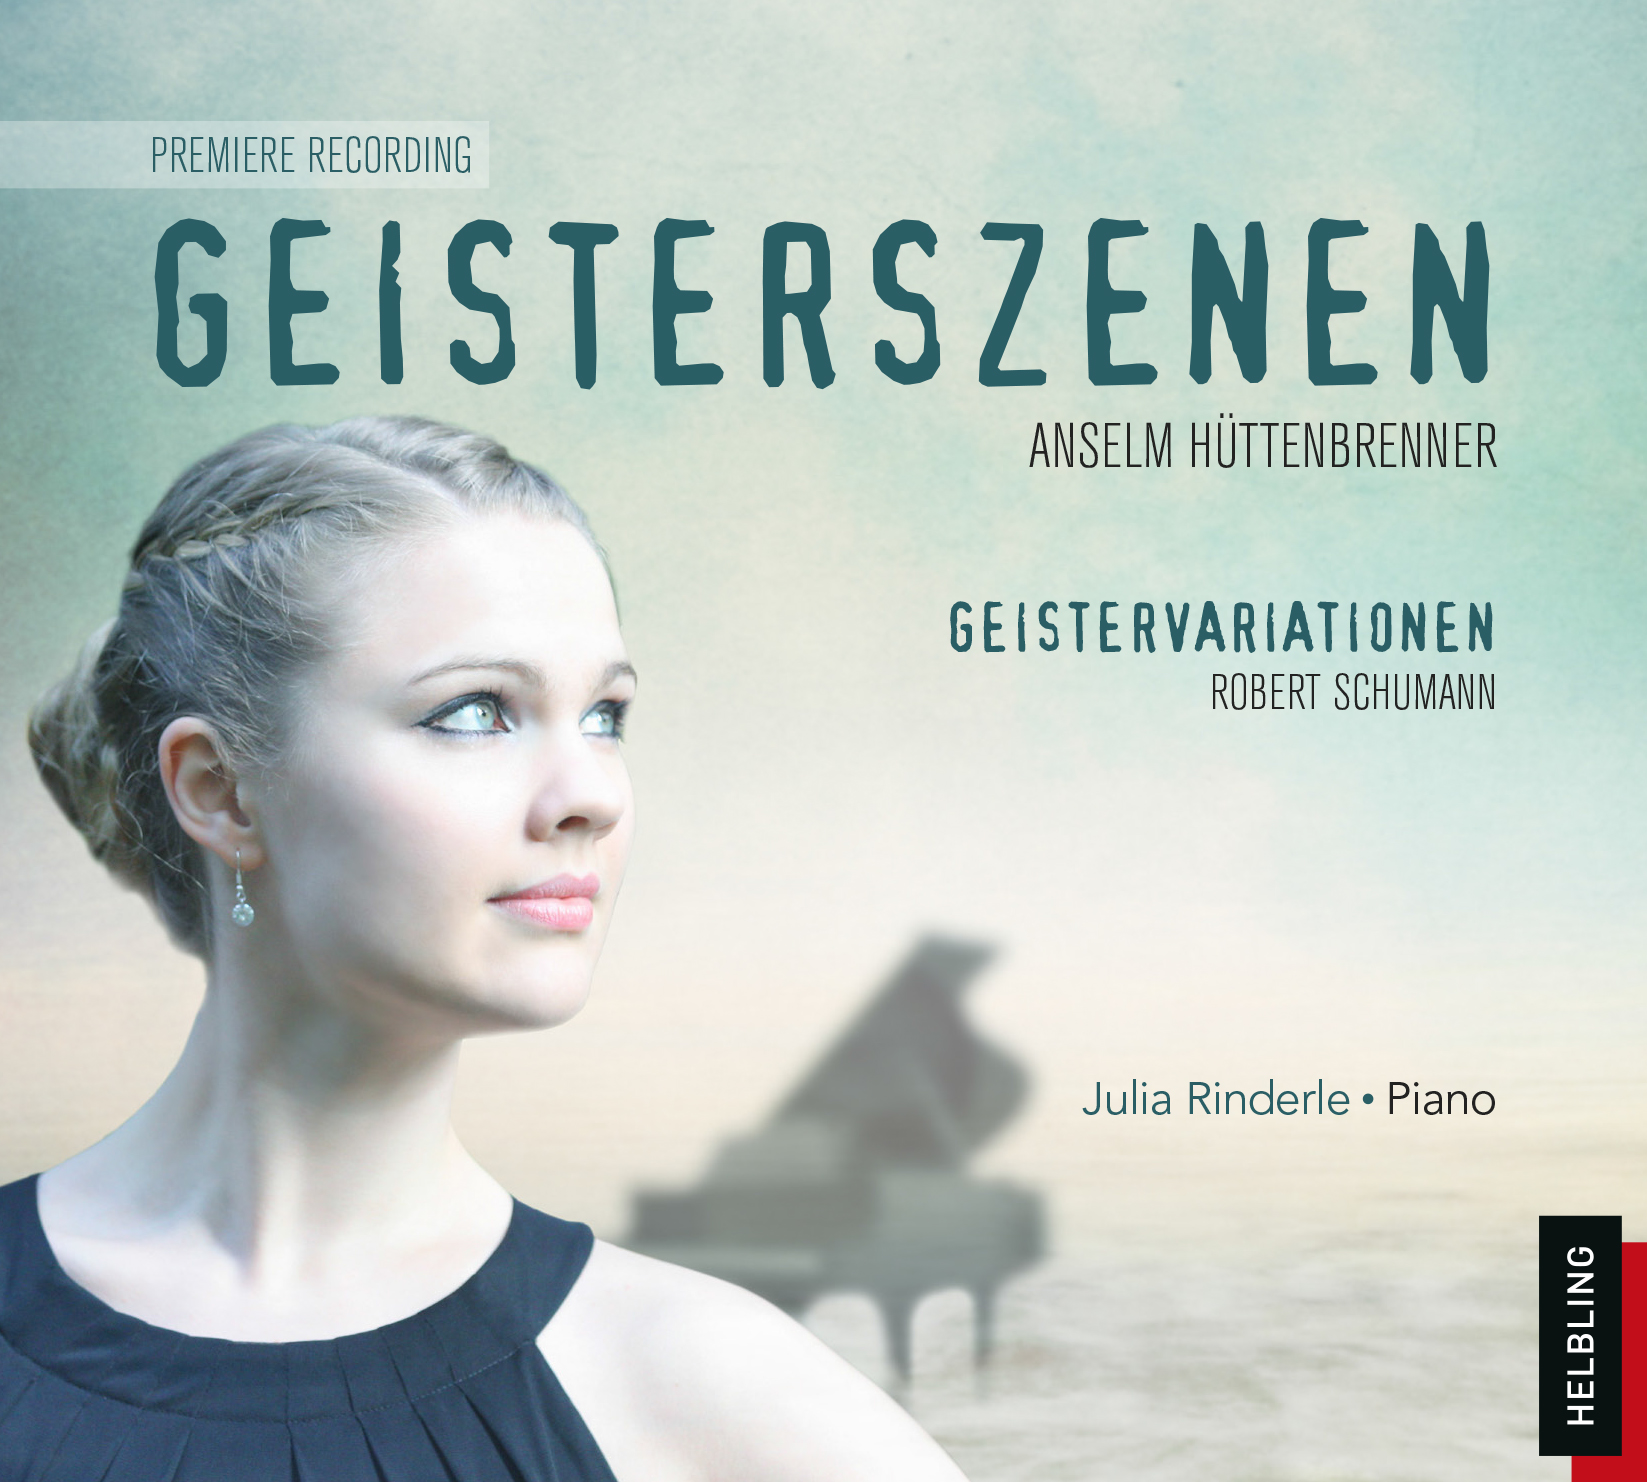 RZ_HEL_Cover CD_Geisterszenen